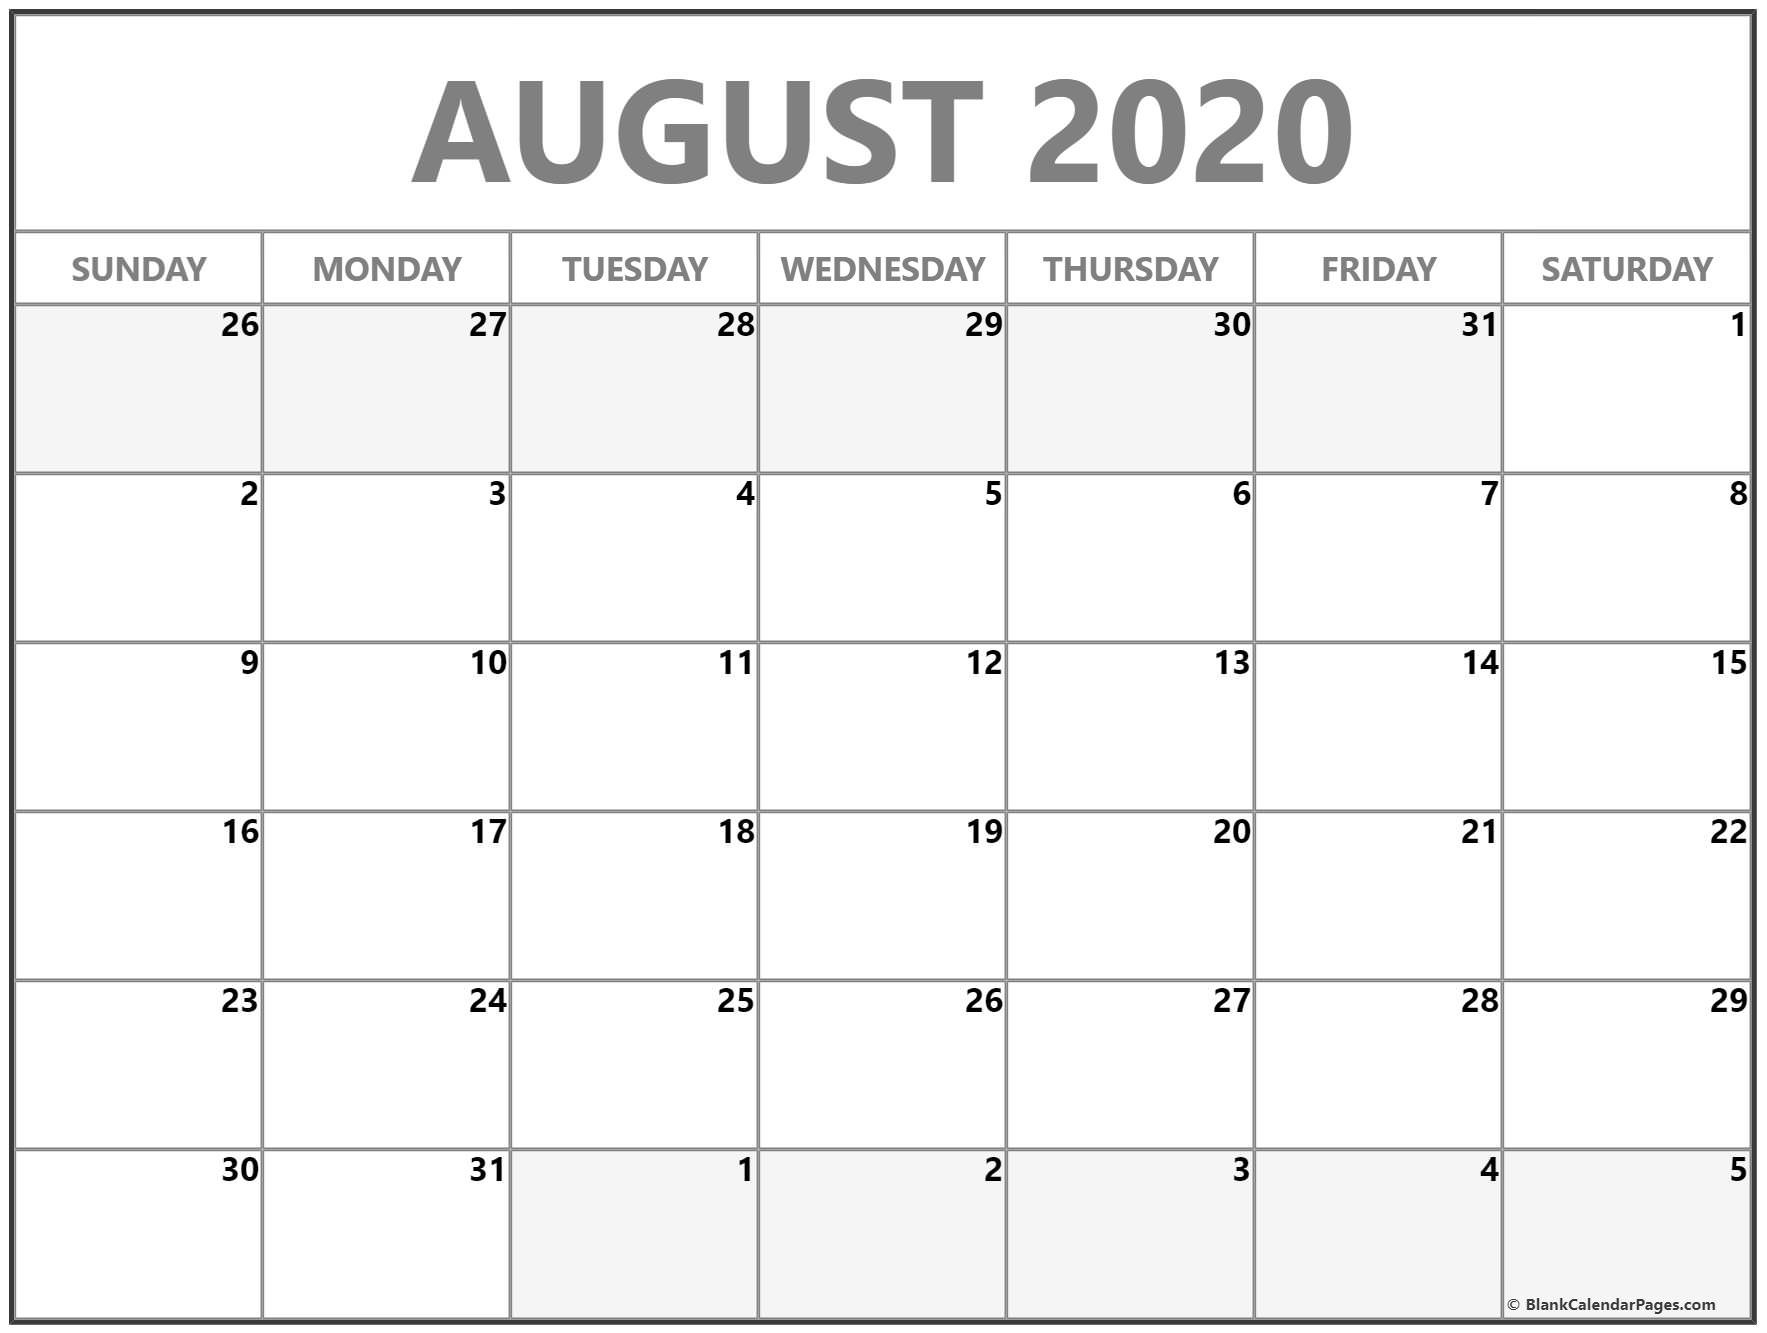 August 2020 Calendar | Free Printable Monthly Calendars-Monthly Calendar June July August 2020